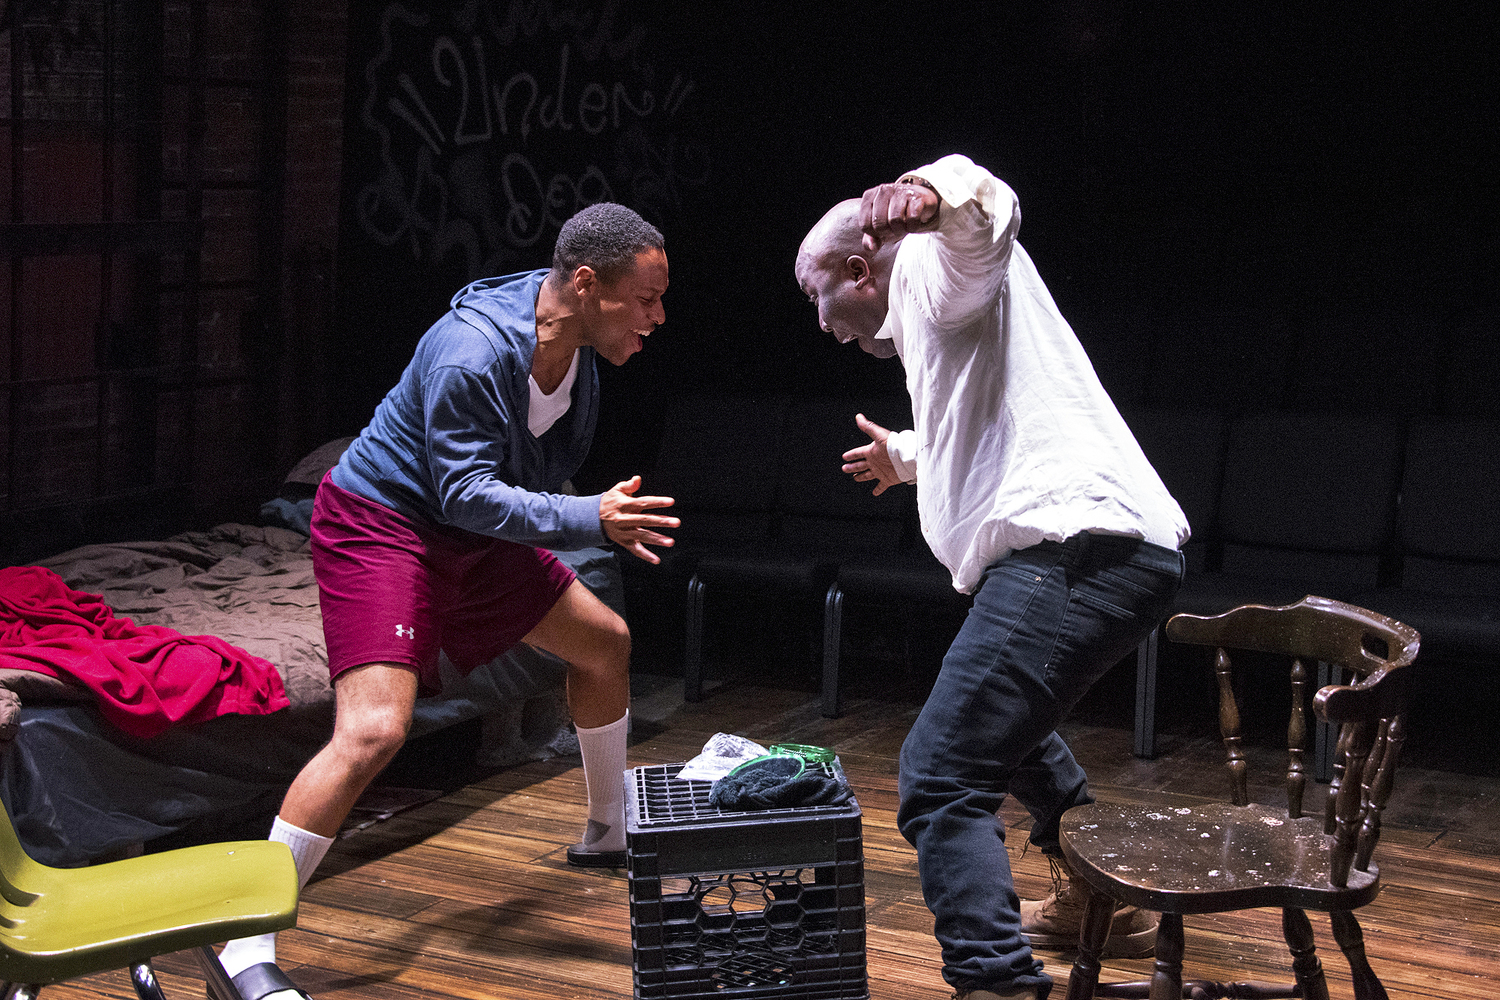 BWW Review: TOPDOG/UNDERDOG at TheatreLAB: A Powerful Portrayal of the Human Dynamic